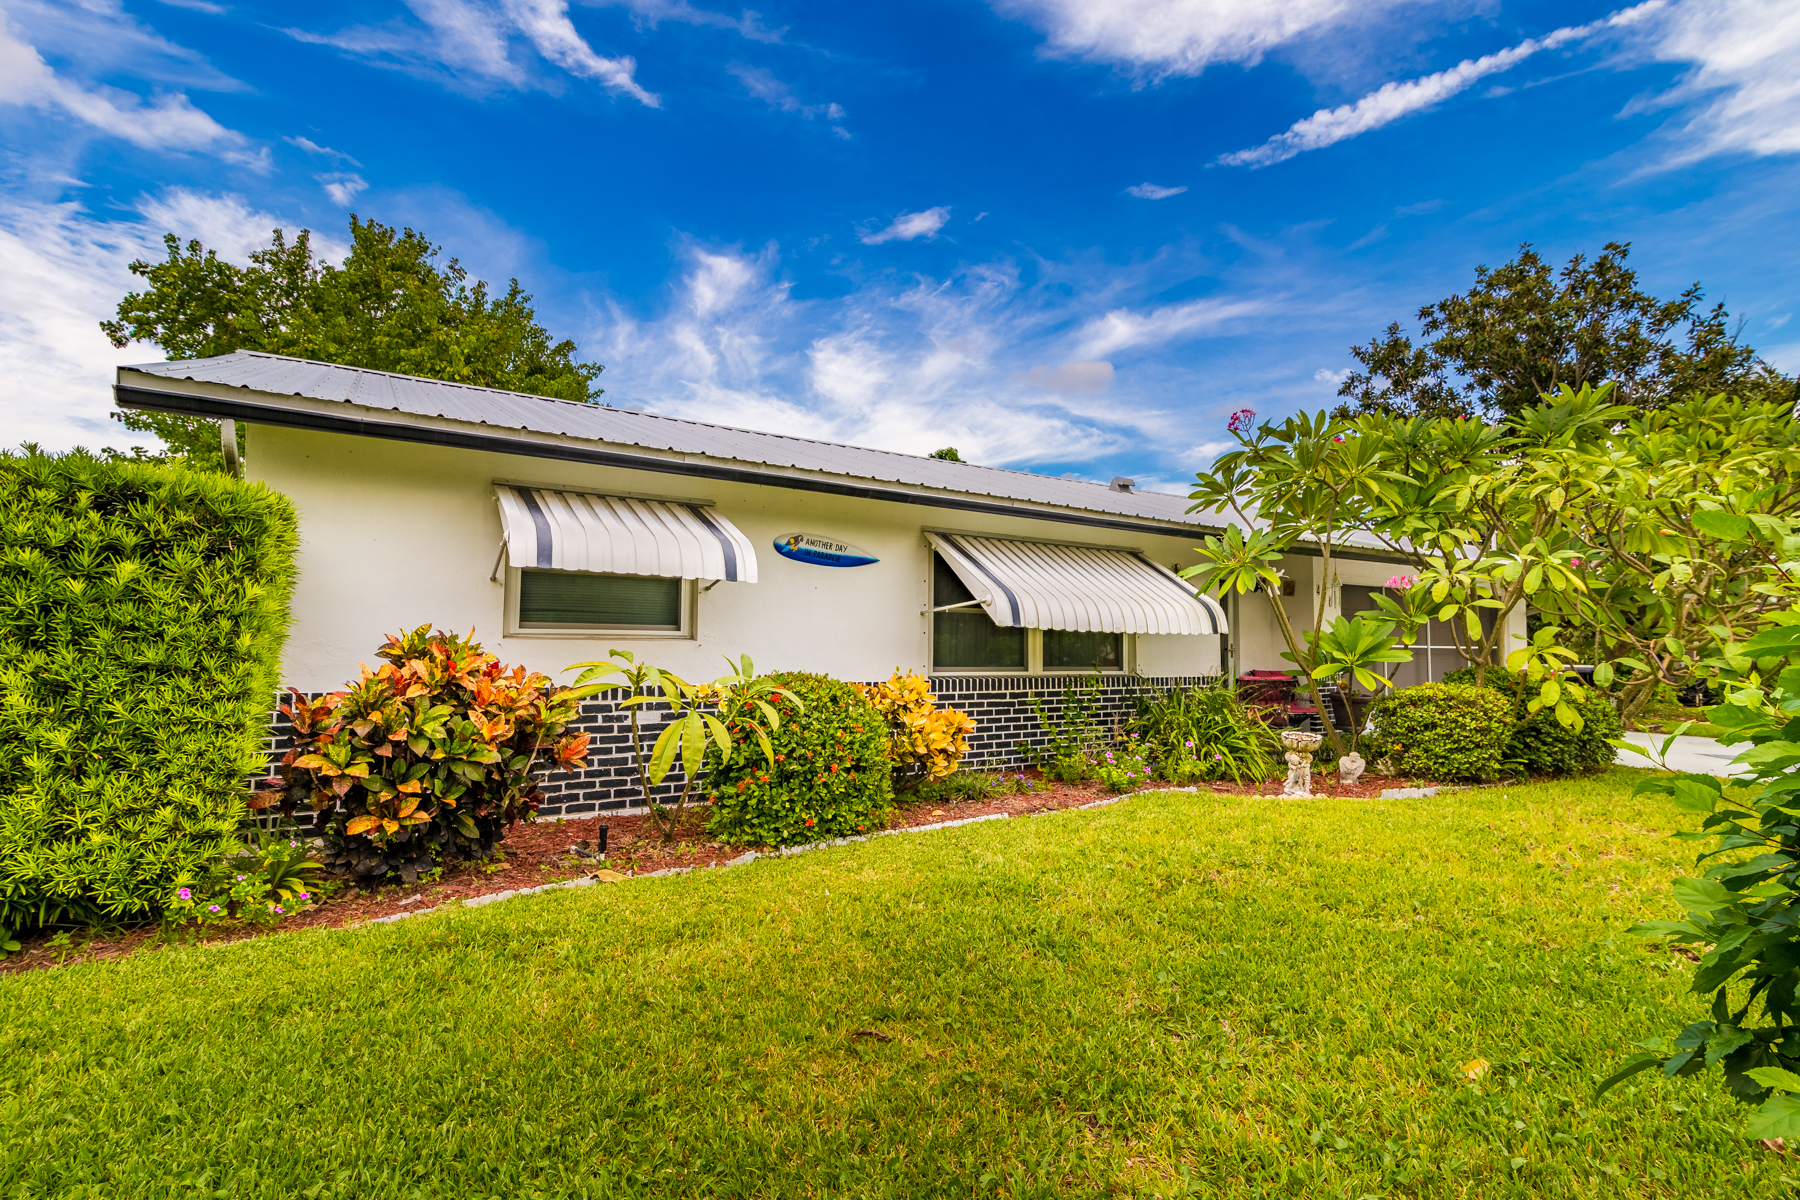 Single Family Home for Sale at Charming Updated Home in Riveria Estates 436 Dolphin Street Melbourne Beach, Florida 32951 United States